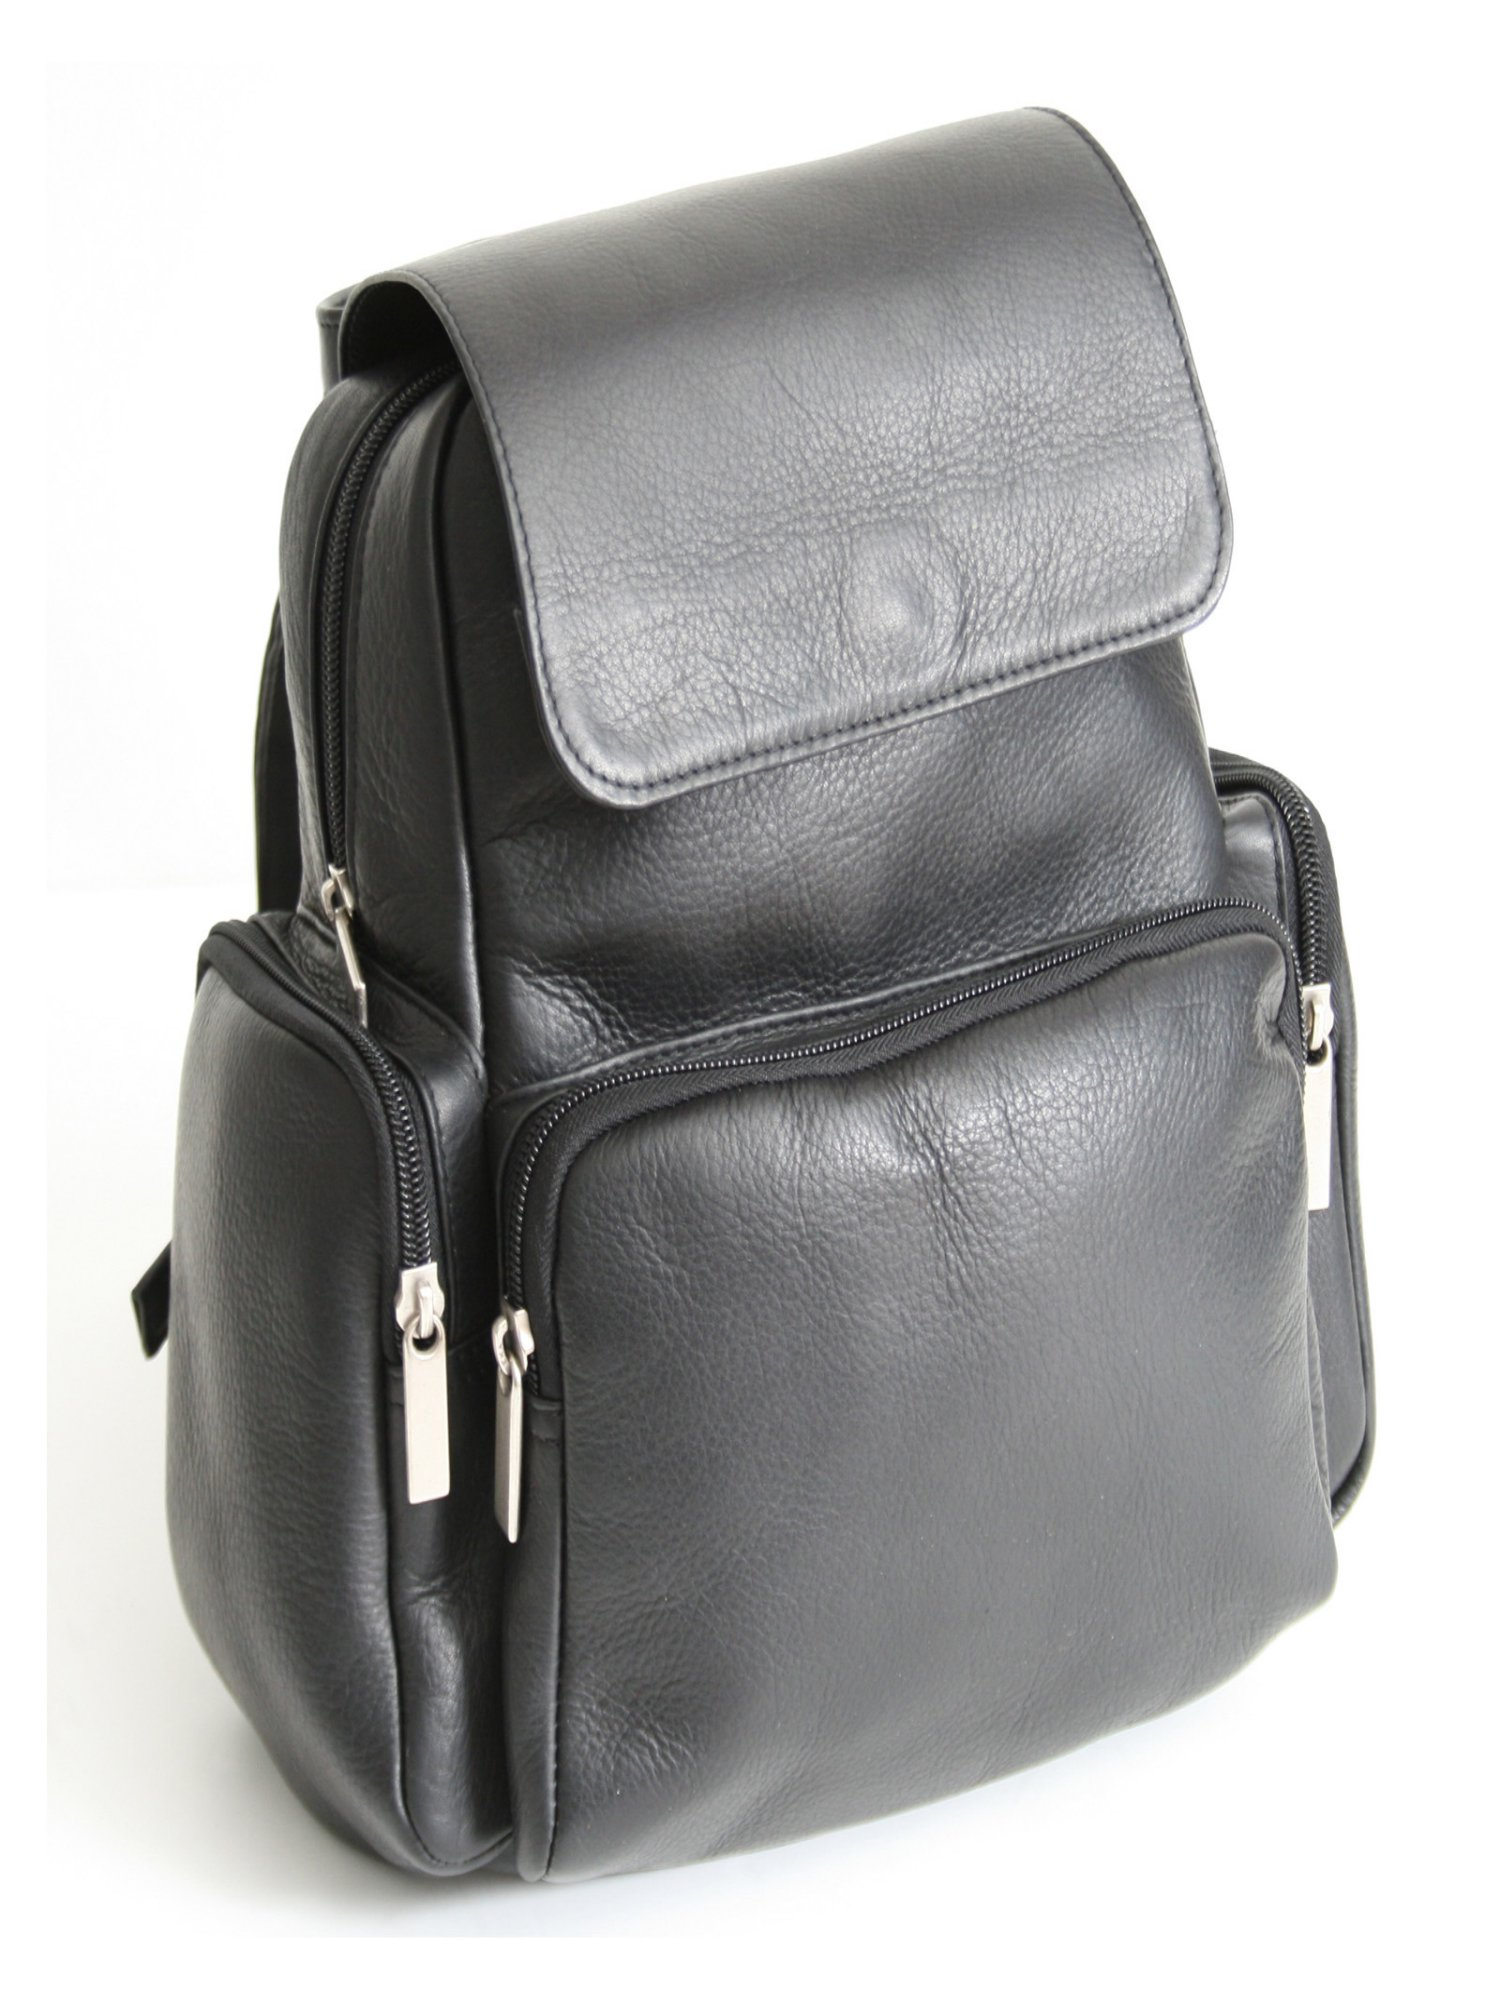 Royce Leather Colombian Vaquetta Leather Knapsack Backpack